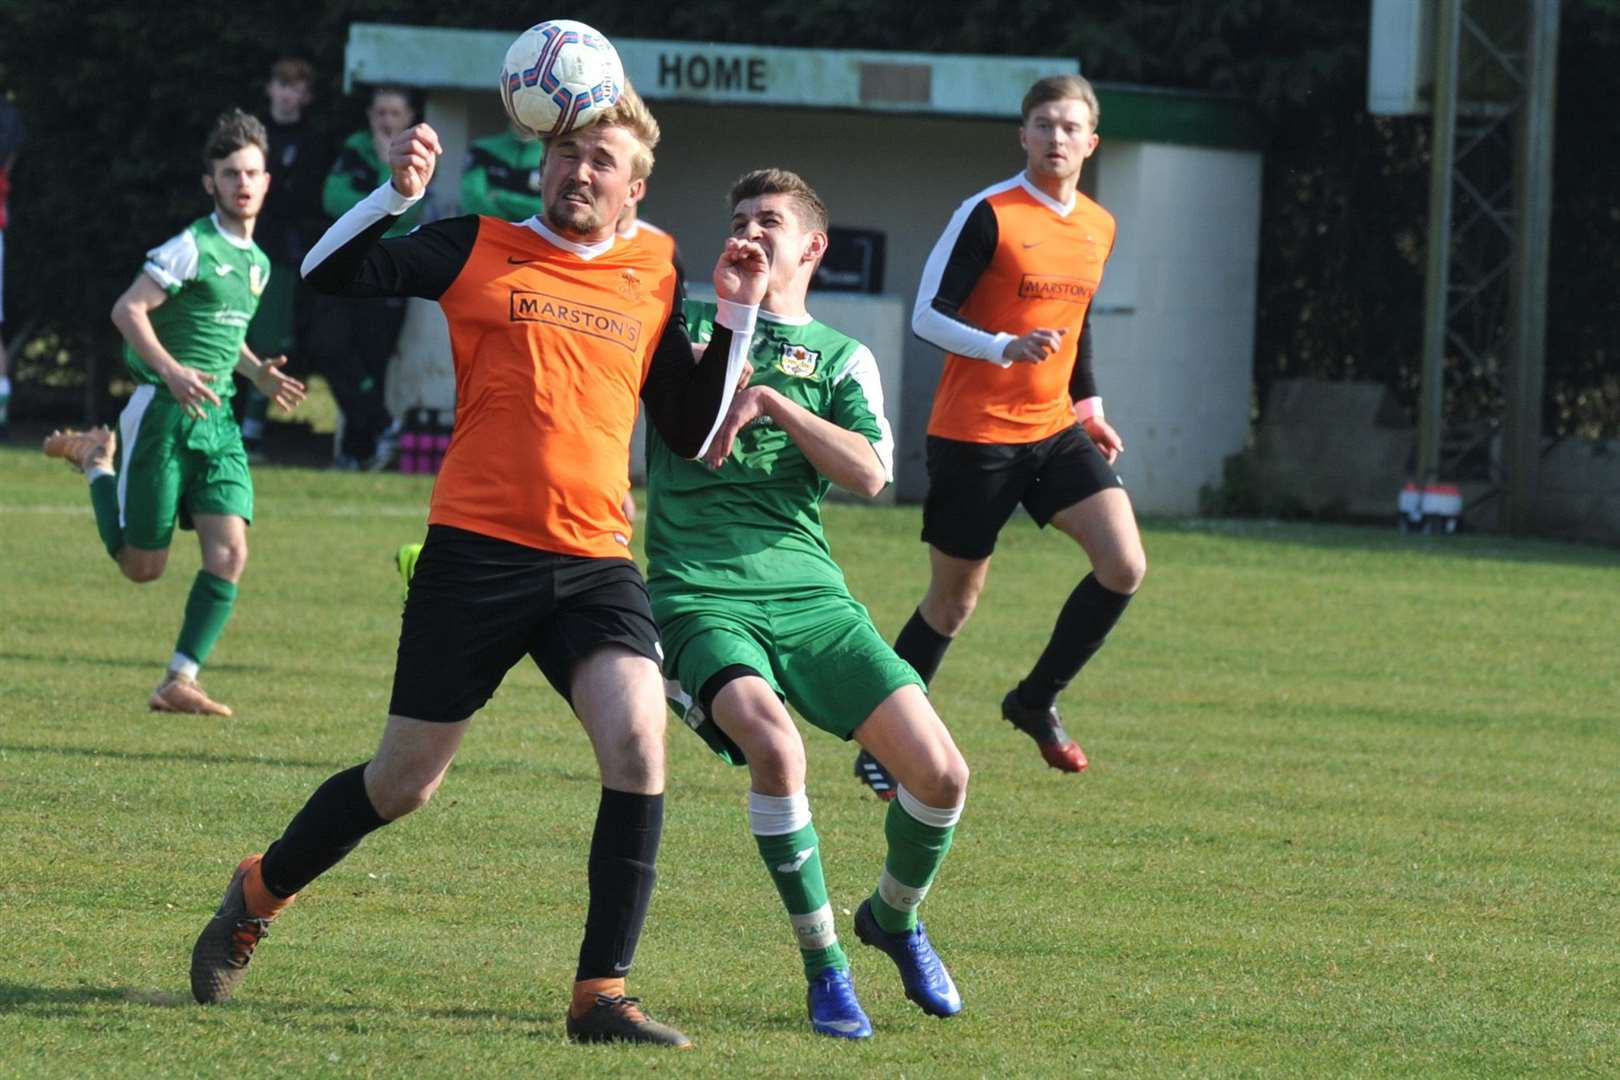 Cottesmore ran out 3-0 winners against Barlestone St Giles on Saturday. Photo: Alan Walters (8188159)